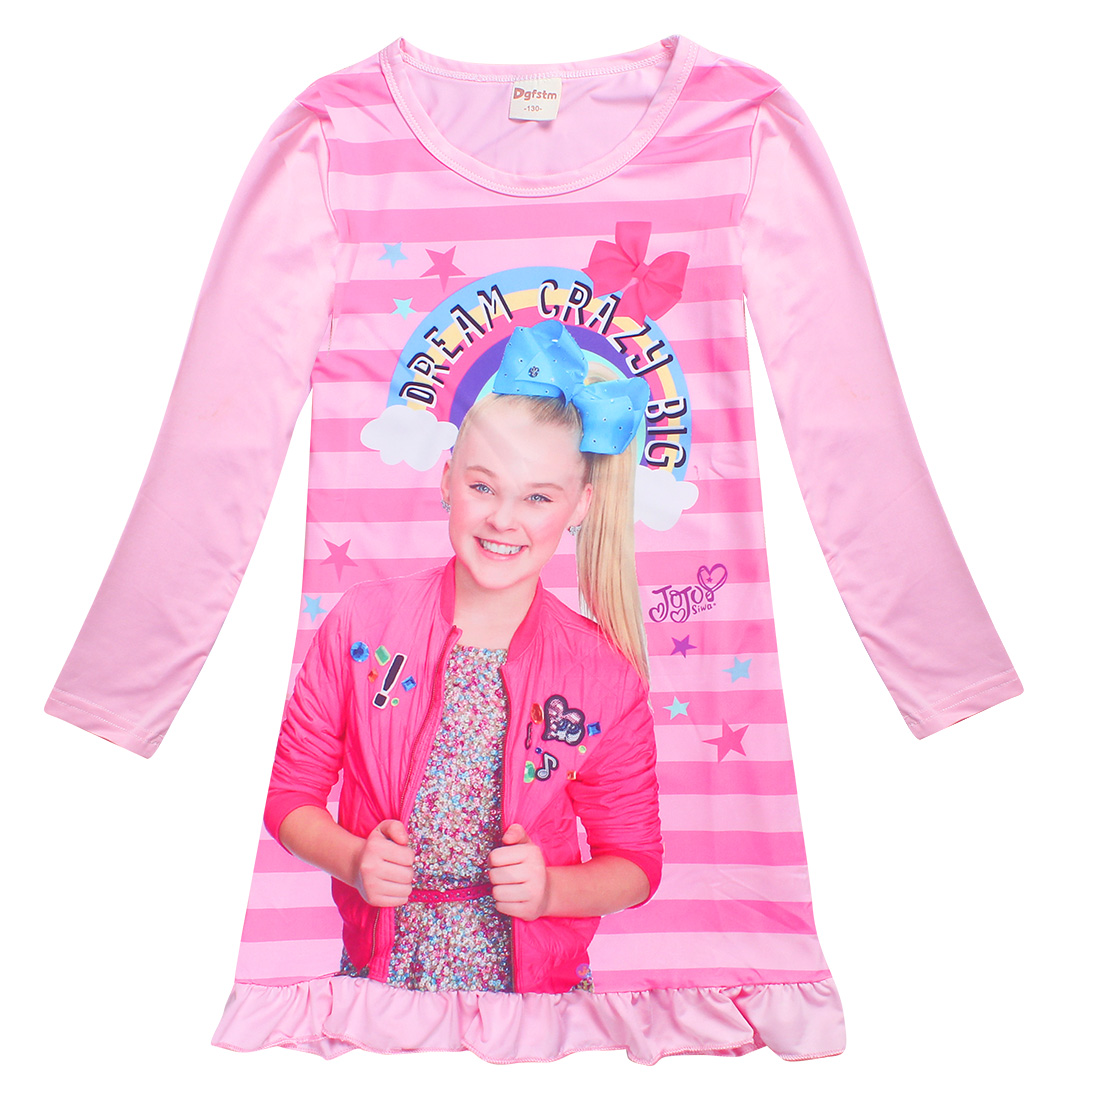 Detail Feedback Questions About 2018 NEW JOJO SIWA Teens Dresses For Girls Children Clothing Silk Dress Princess Birthday Party Costume Toddler Unicorn